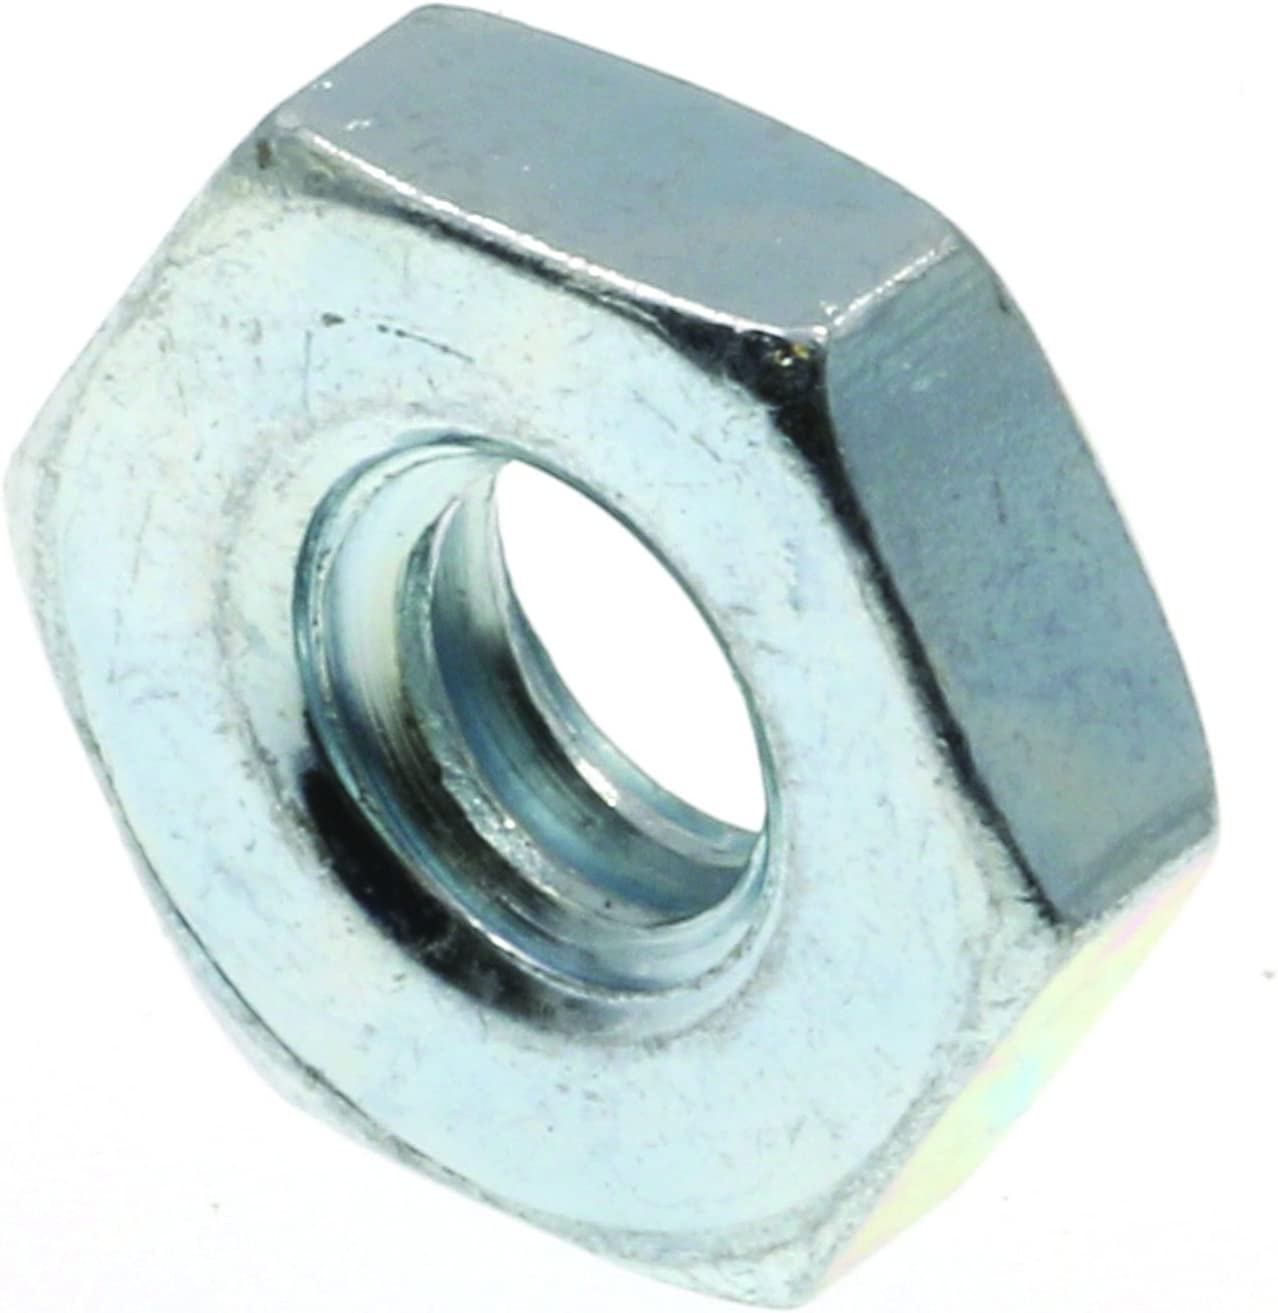 Zinc Plated Steel 100-Pack #12-24 Prime-Line 9074344 Machine Screw Hex Nuts